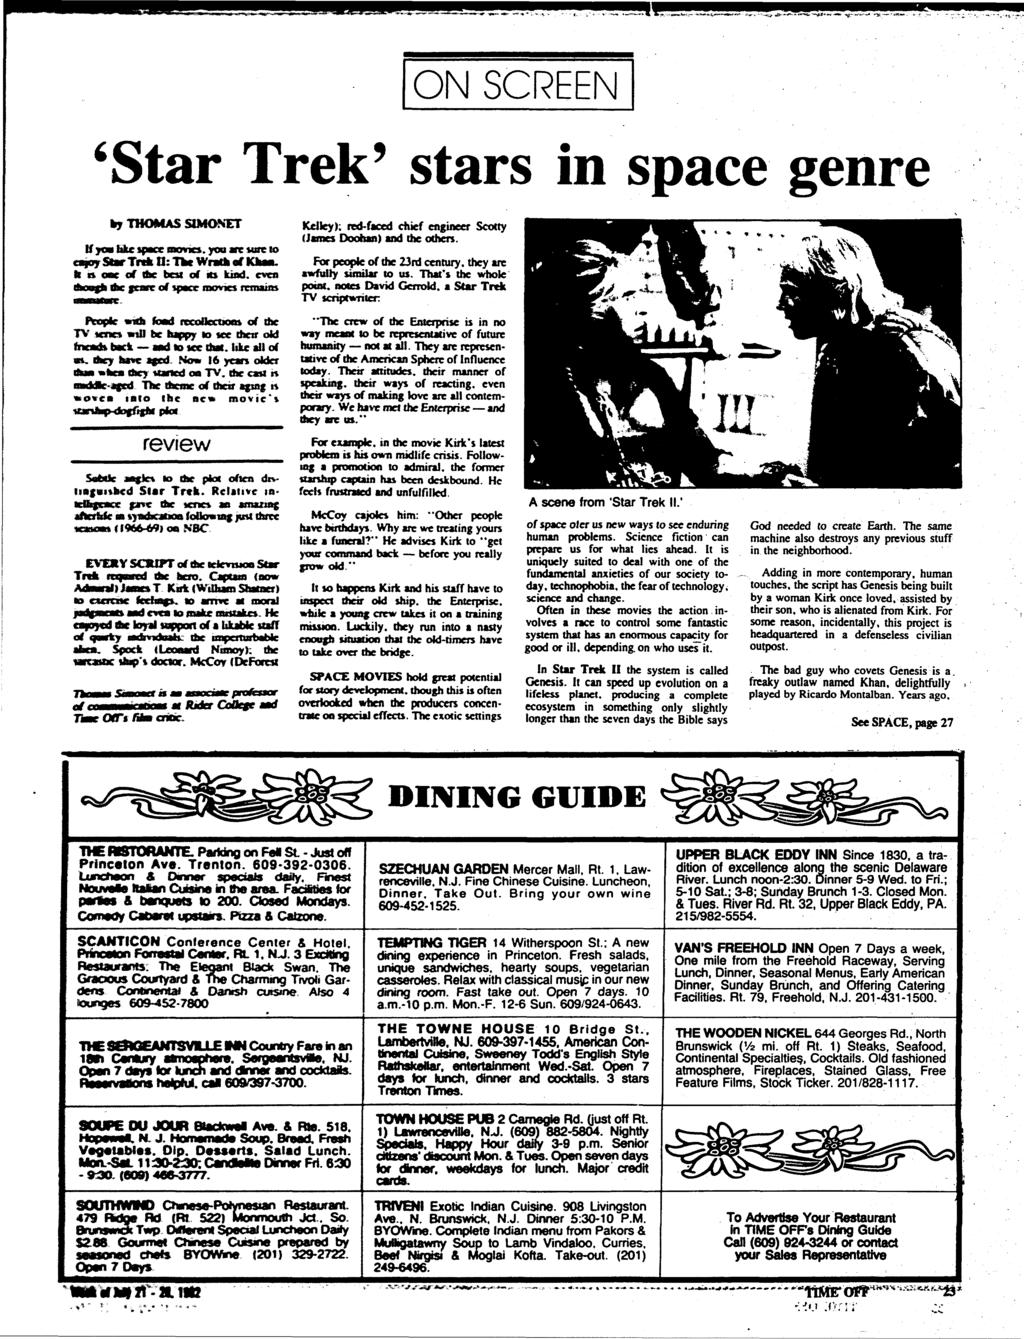 ON SCREEN 'Star Trek' stars in space genre by THOMAS SLMOSET tf yoa hkc space memo, you me tore «o oy Star Tnli O: Ike Wratk of KkM.